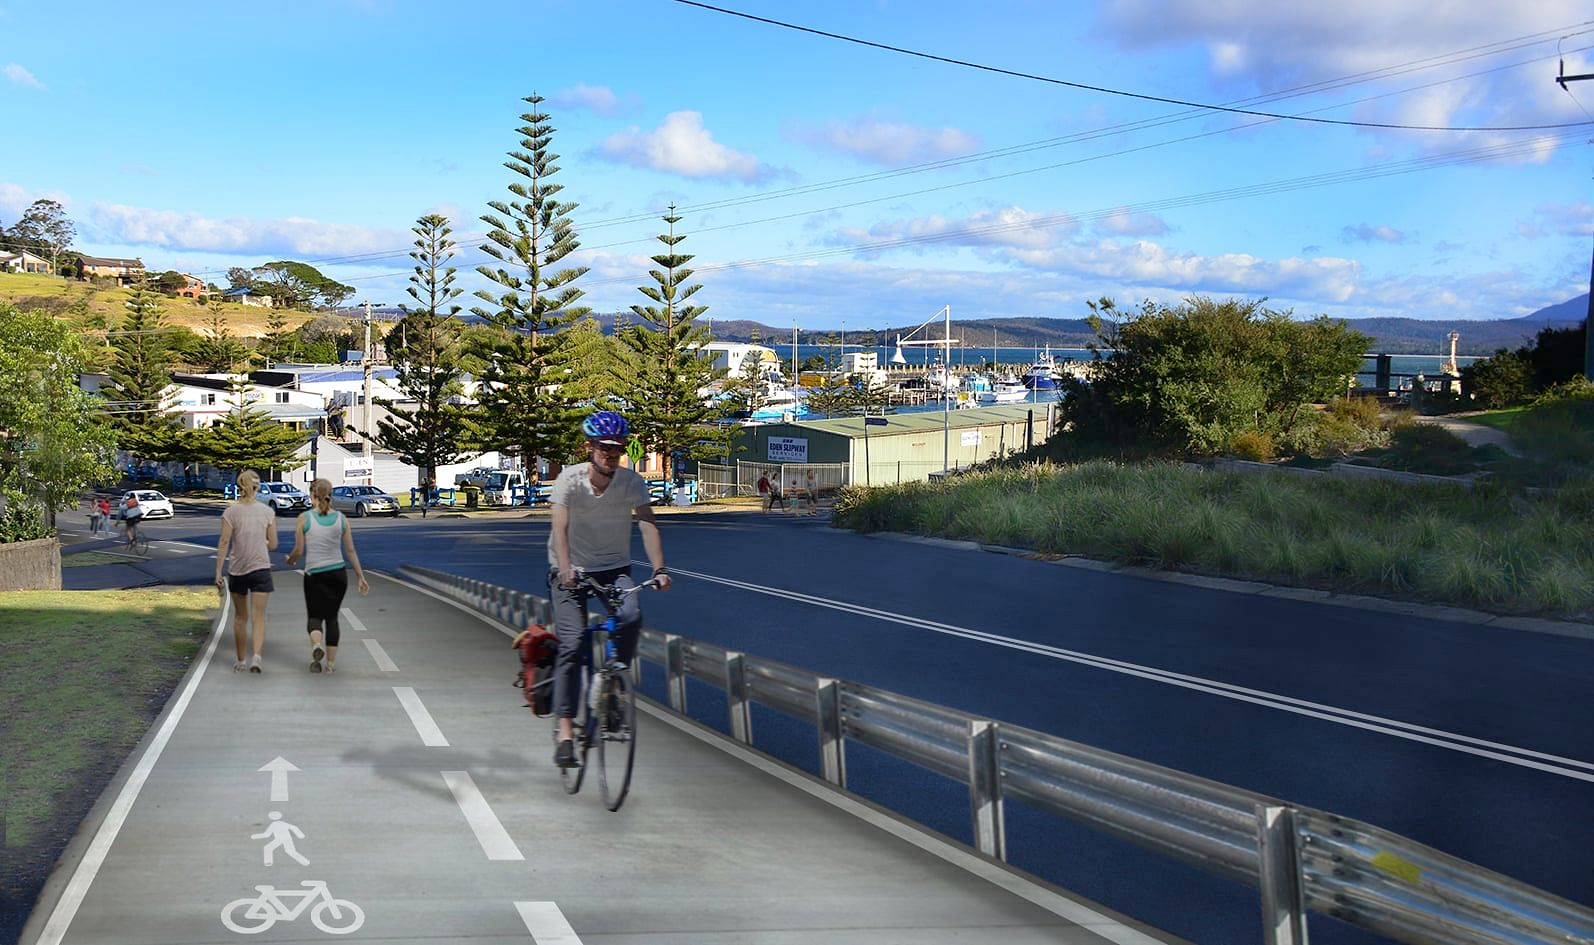 The Imlay Street and Albert Terrace upgrade project includes a new shared path to improve access for cyclists and pedestrians.